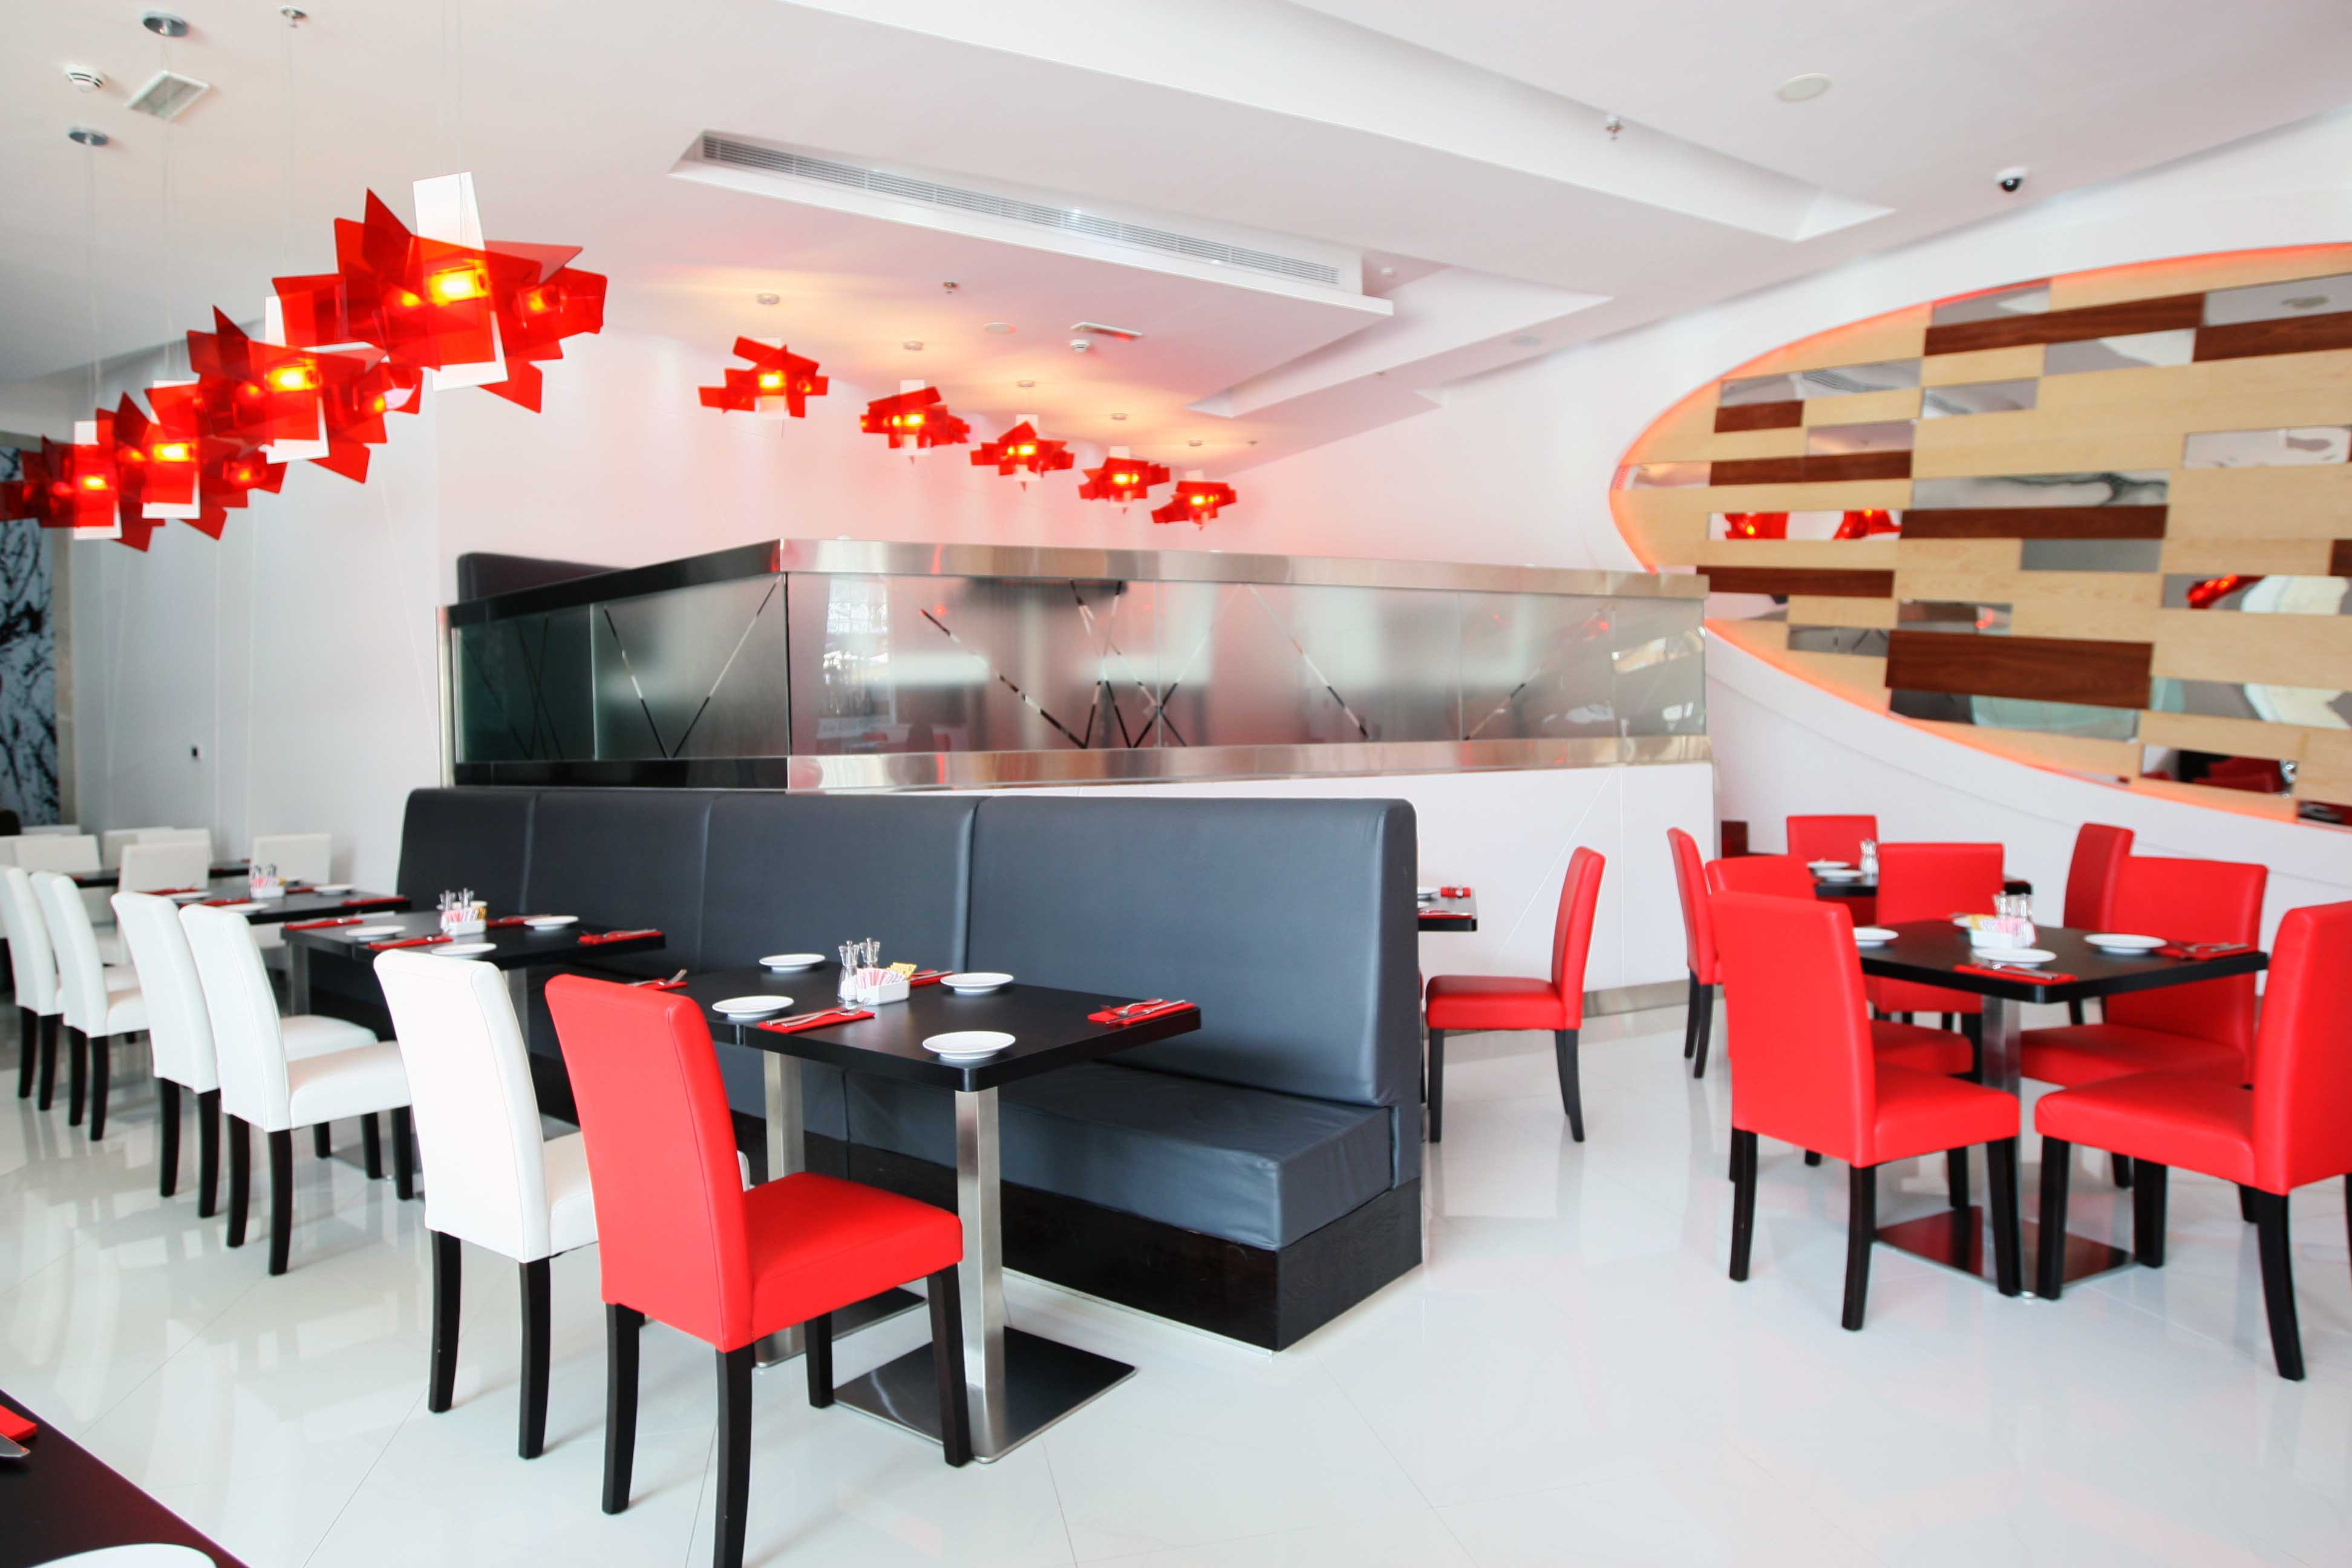 American diner ketchup opens in downtown dubai haute living for Dubai fashions home decorations